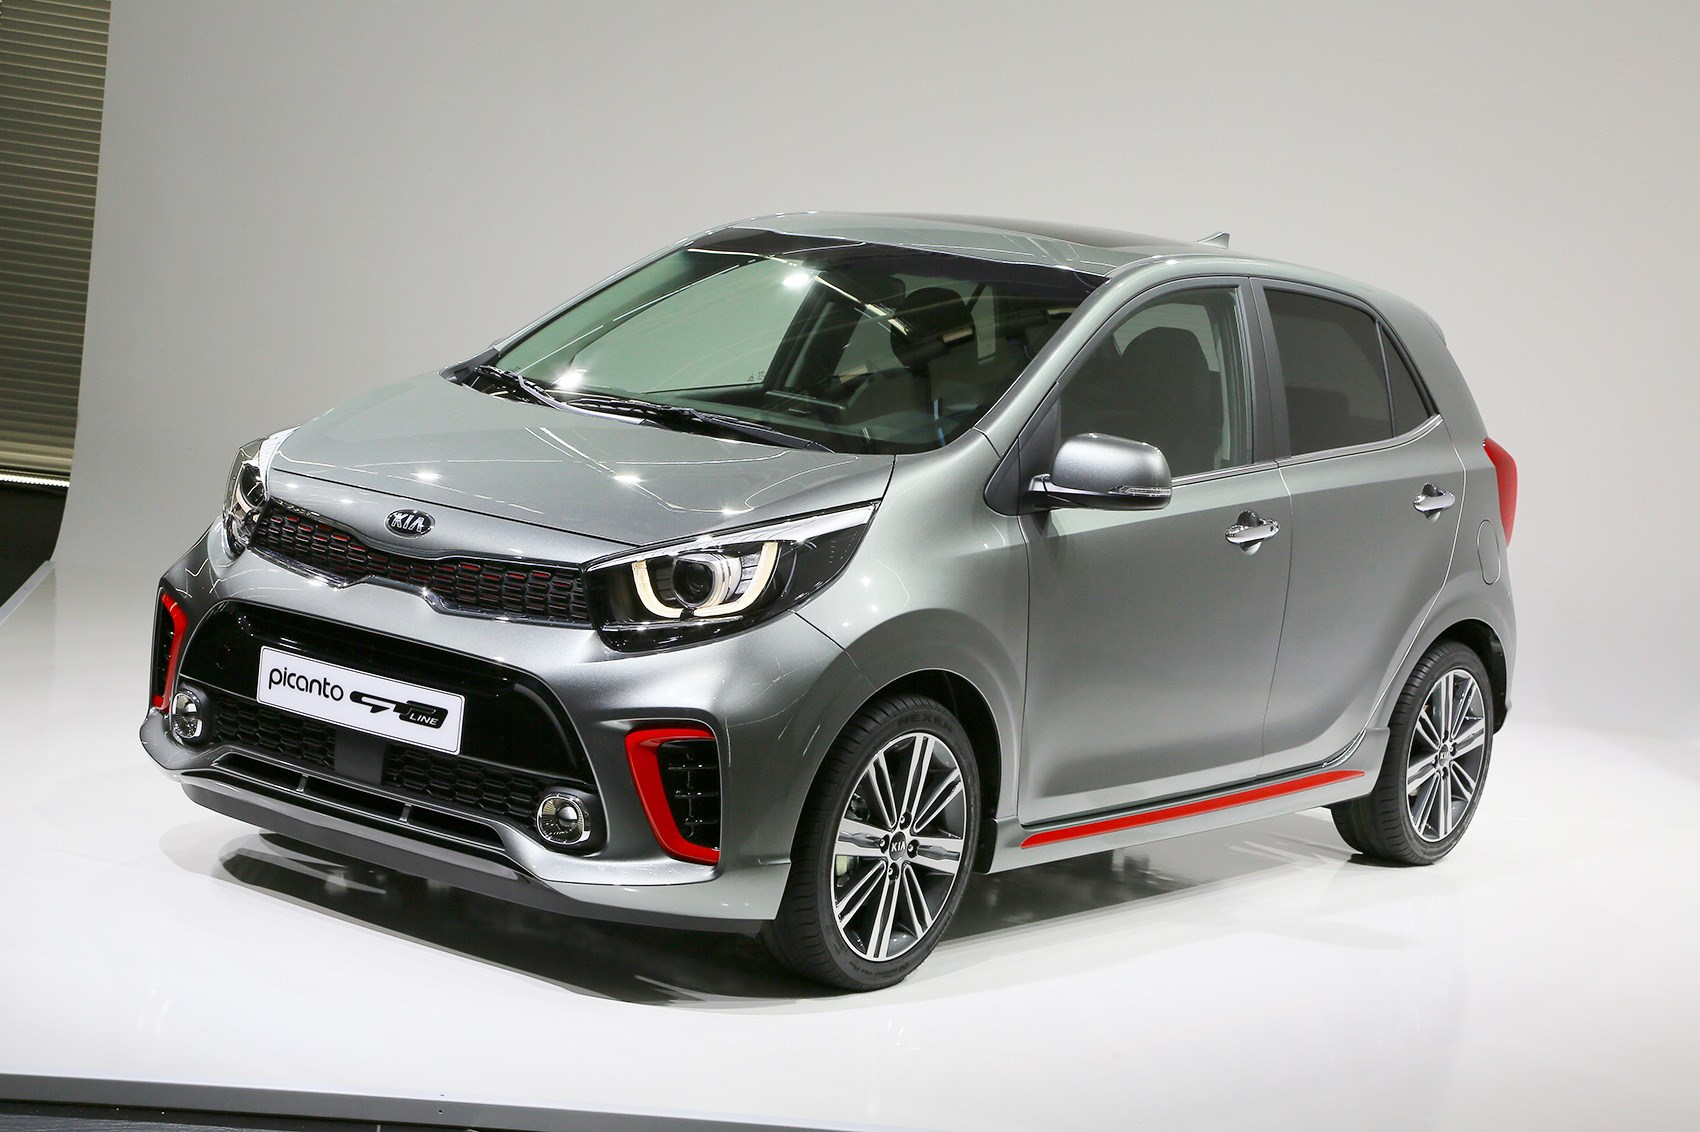 new kia picanto v3 0 meet korea 39 s slickest city car yet by car magazine. Black Bedroom Furniture Sets. Home Design Ideas